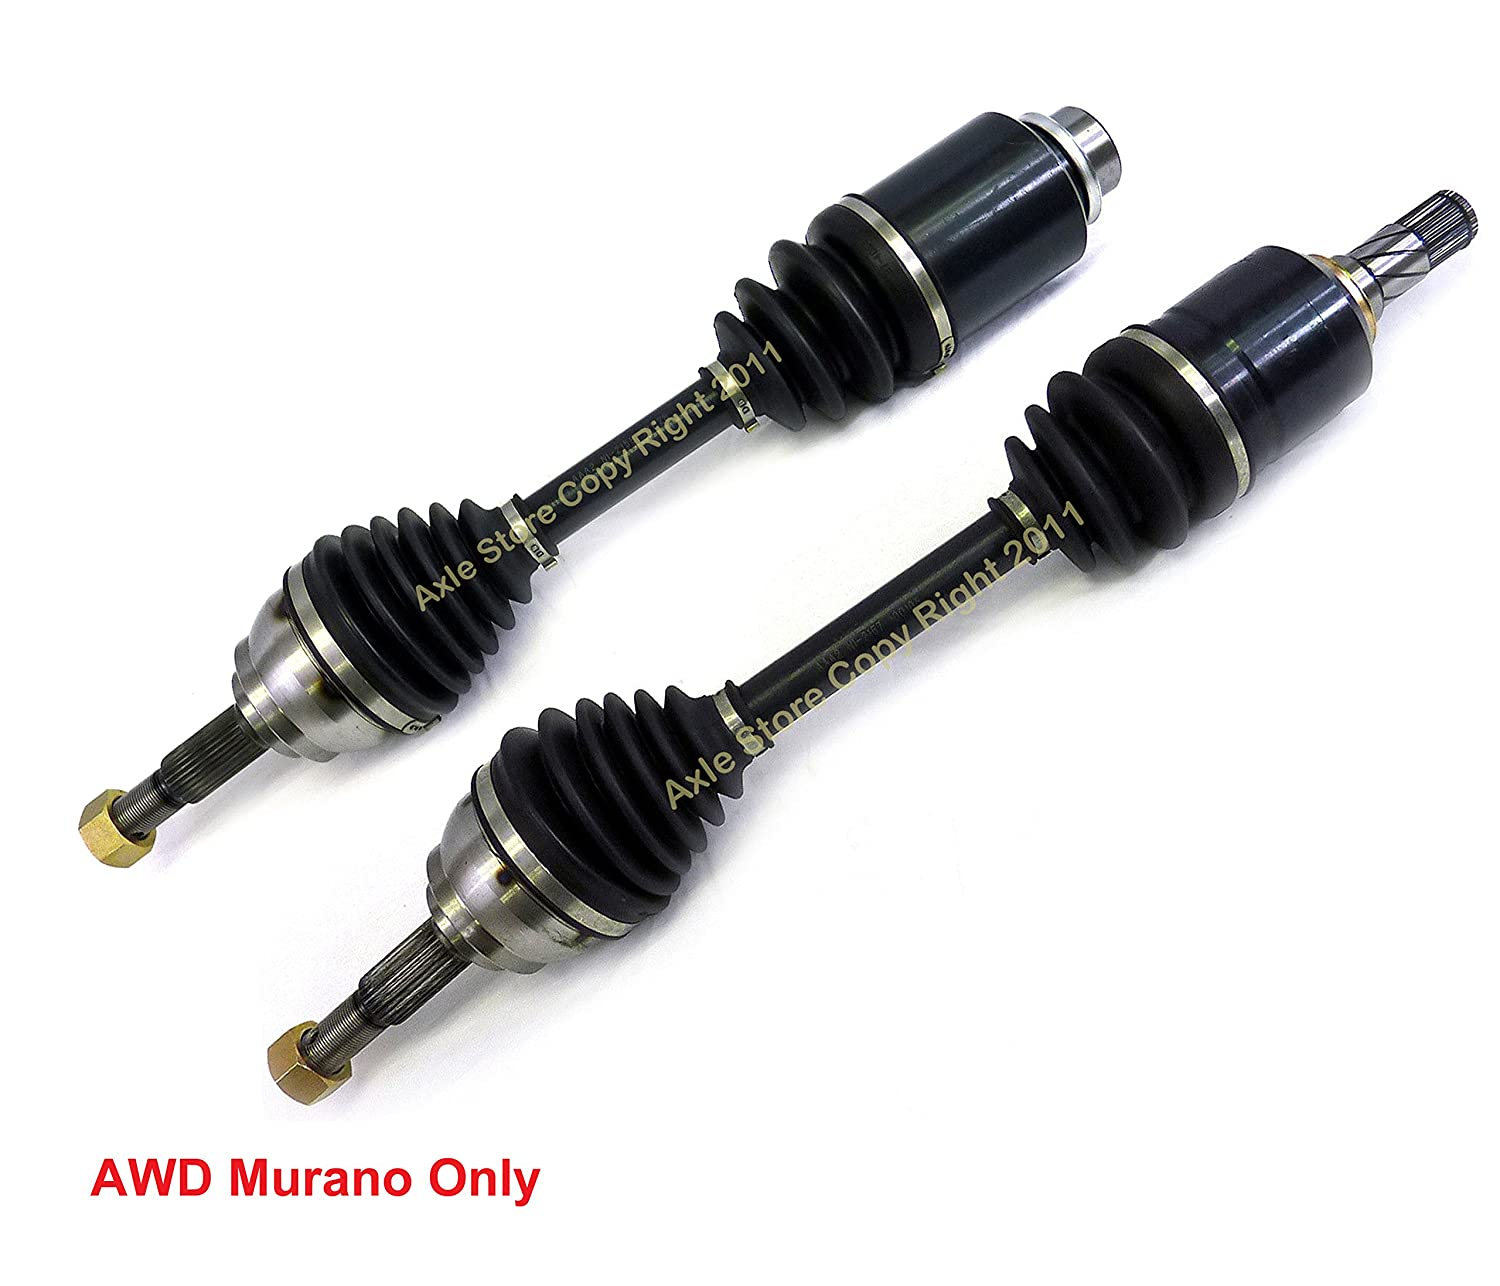 DTA DT1215721581 Front Driver and Passenger Side Premium CV Axles pair WILL NOT Fit 2WD Fits Nissan Murano AWD Only New Drive Axle Assemblies - 2 pcs